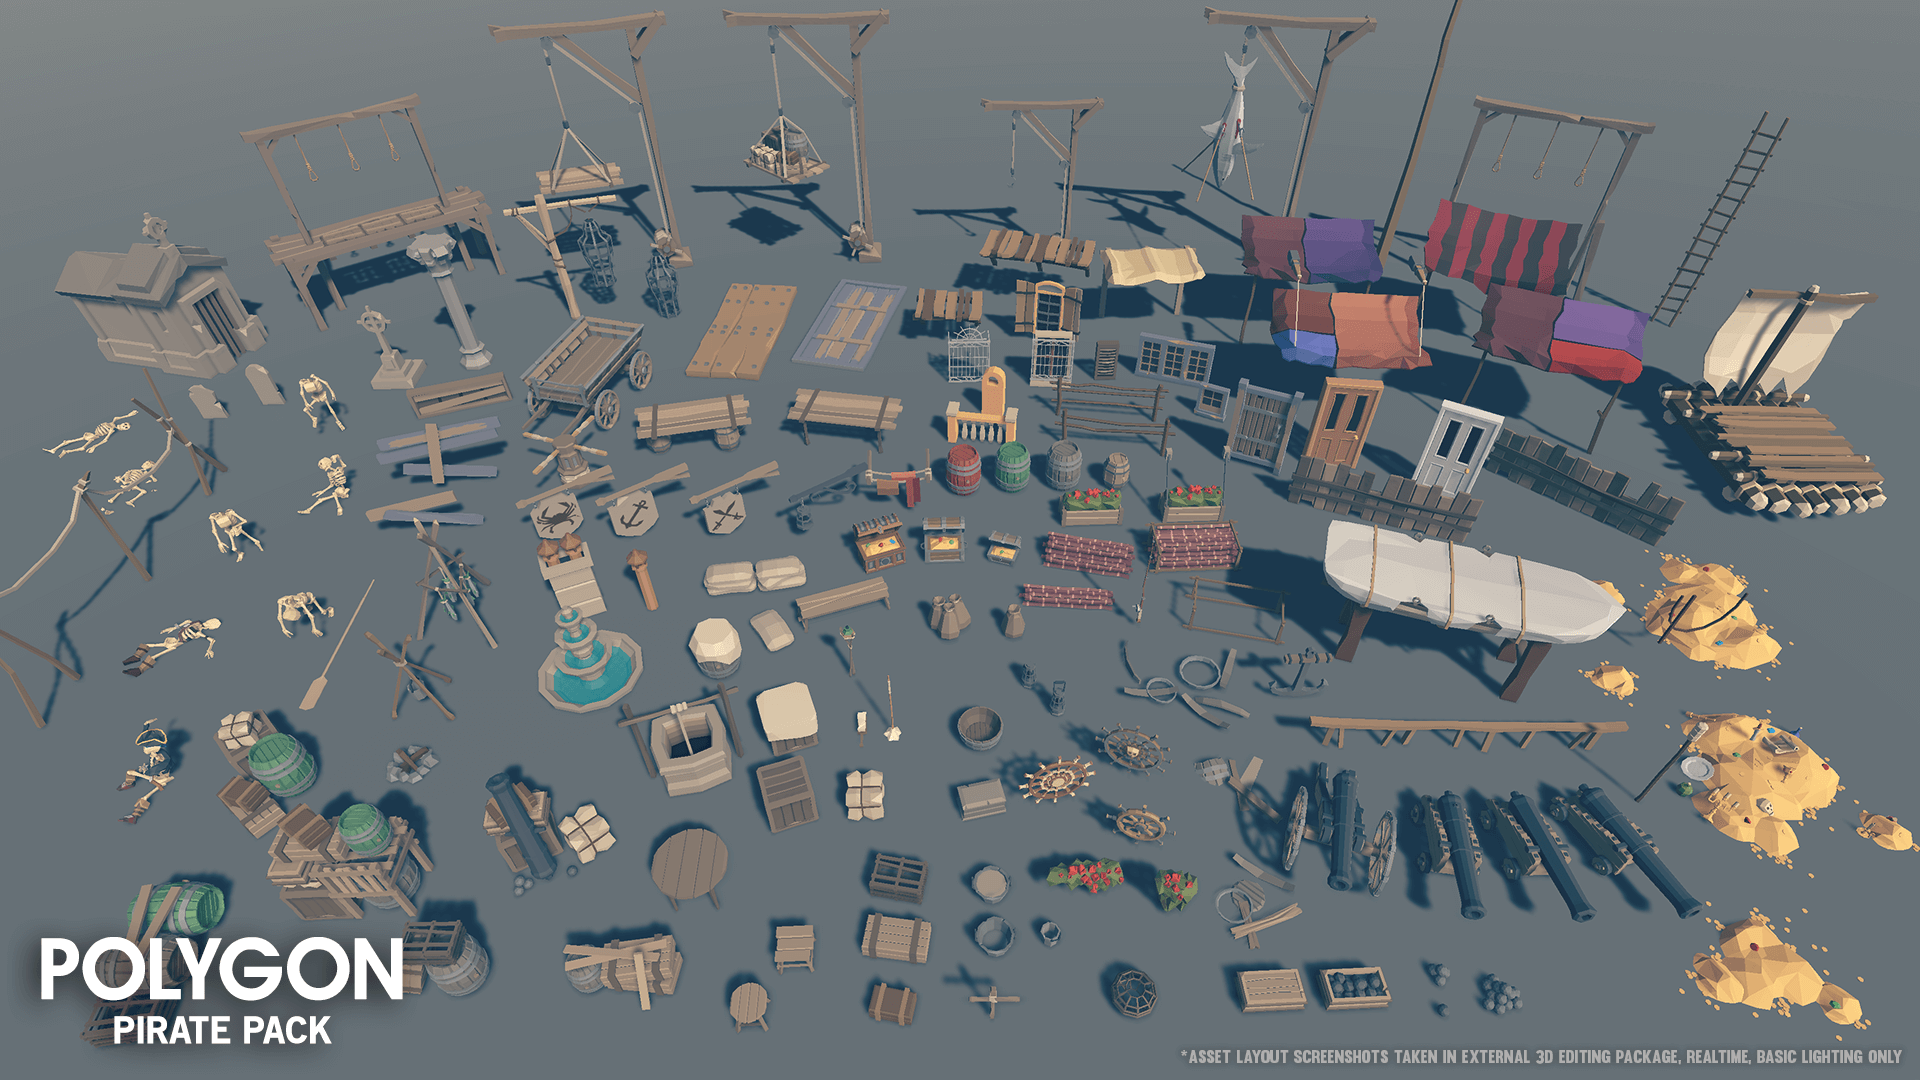 POLYGON - Pirate Pack by Synty Studios in Environments - UE4